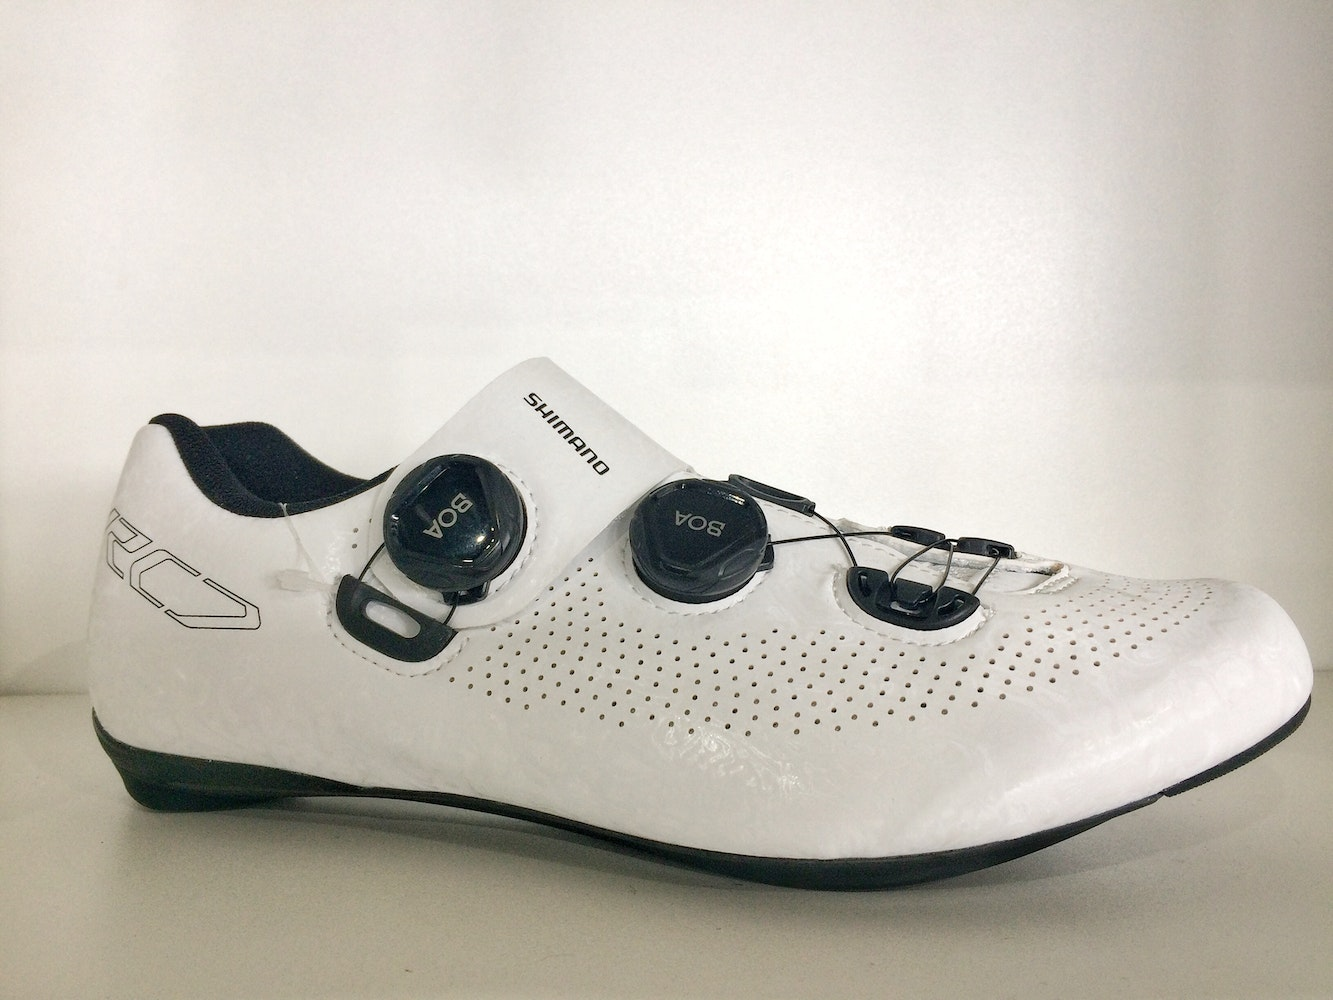 Shimano Sh Rc701 Road Shoes Road Bike Shoes For Sale In